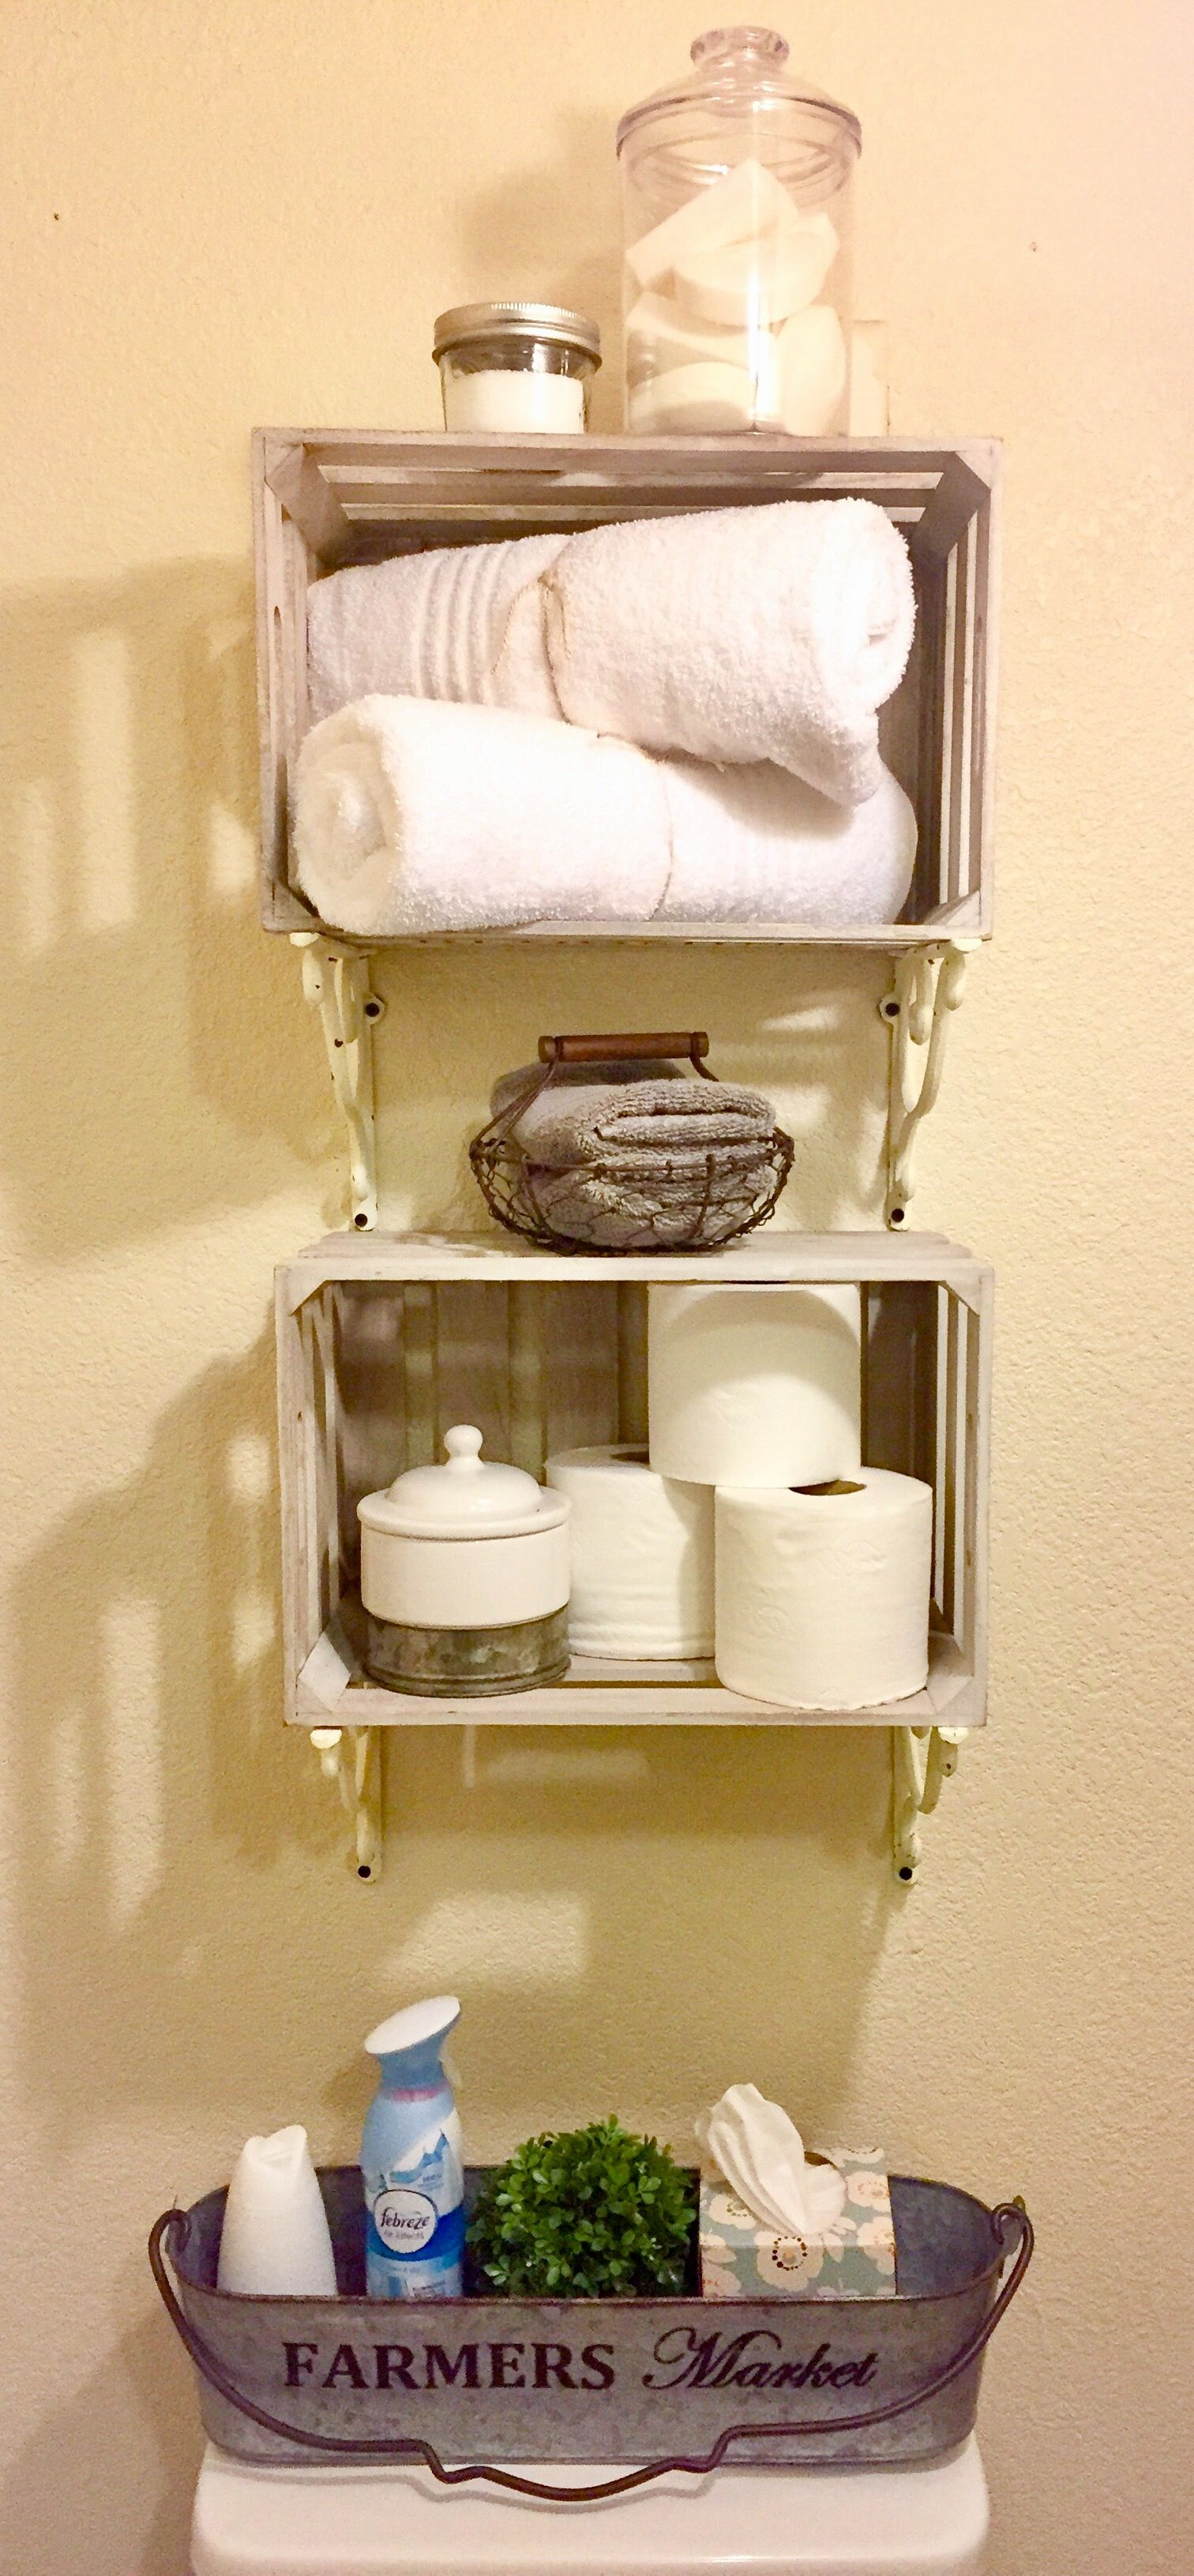 French Country Farmhouse Bathroom Storage shelves & decor